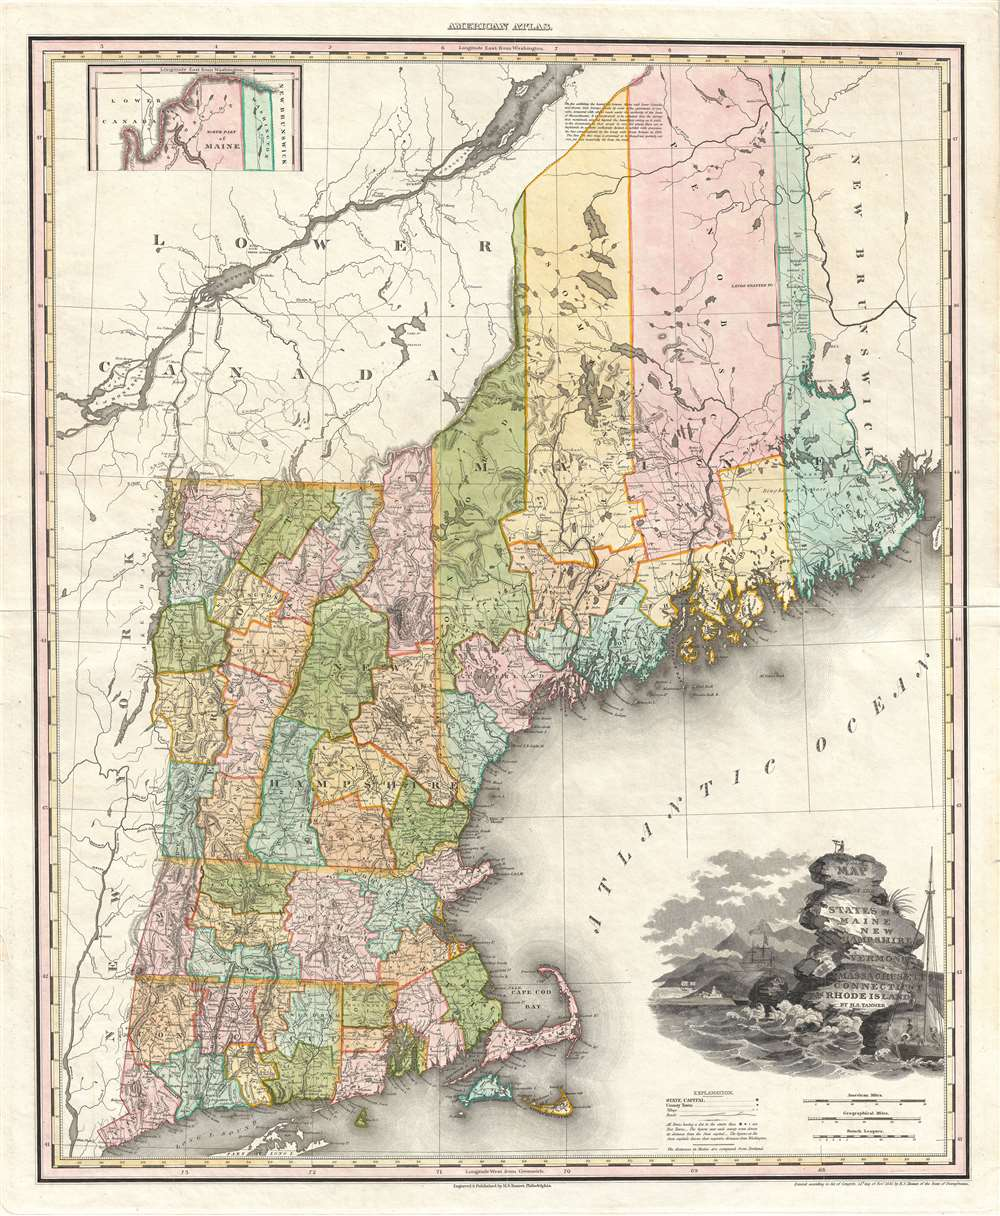 Map of the States of Maine New Hampshire Vermont Massachusetts Connecticut & Rhode Island.